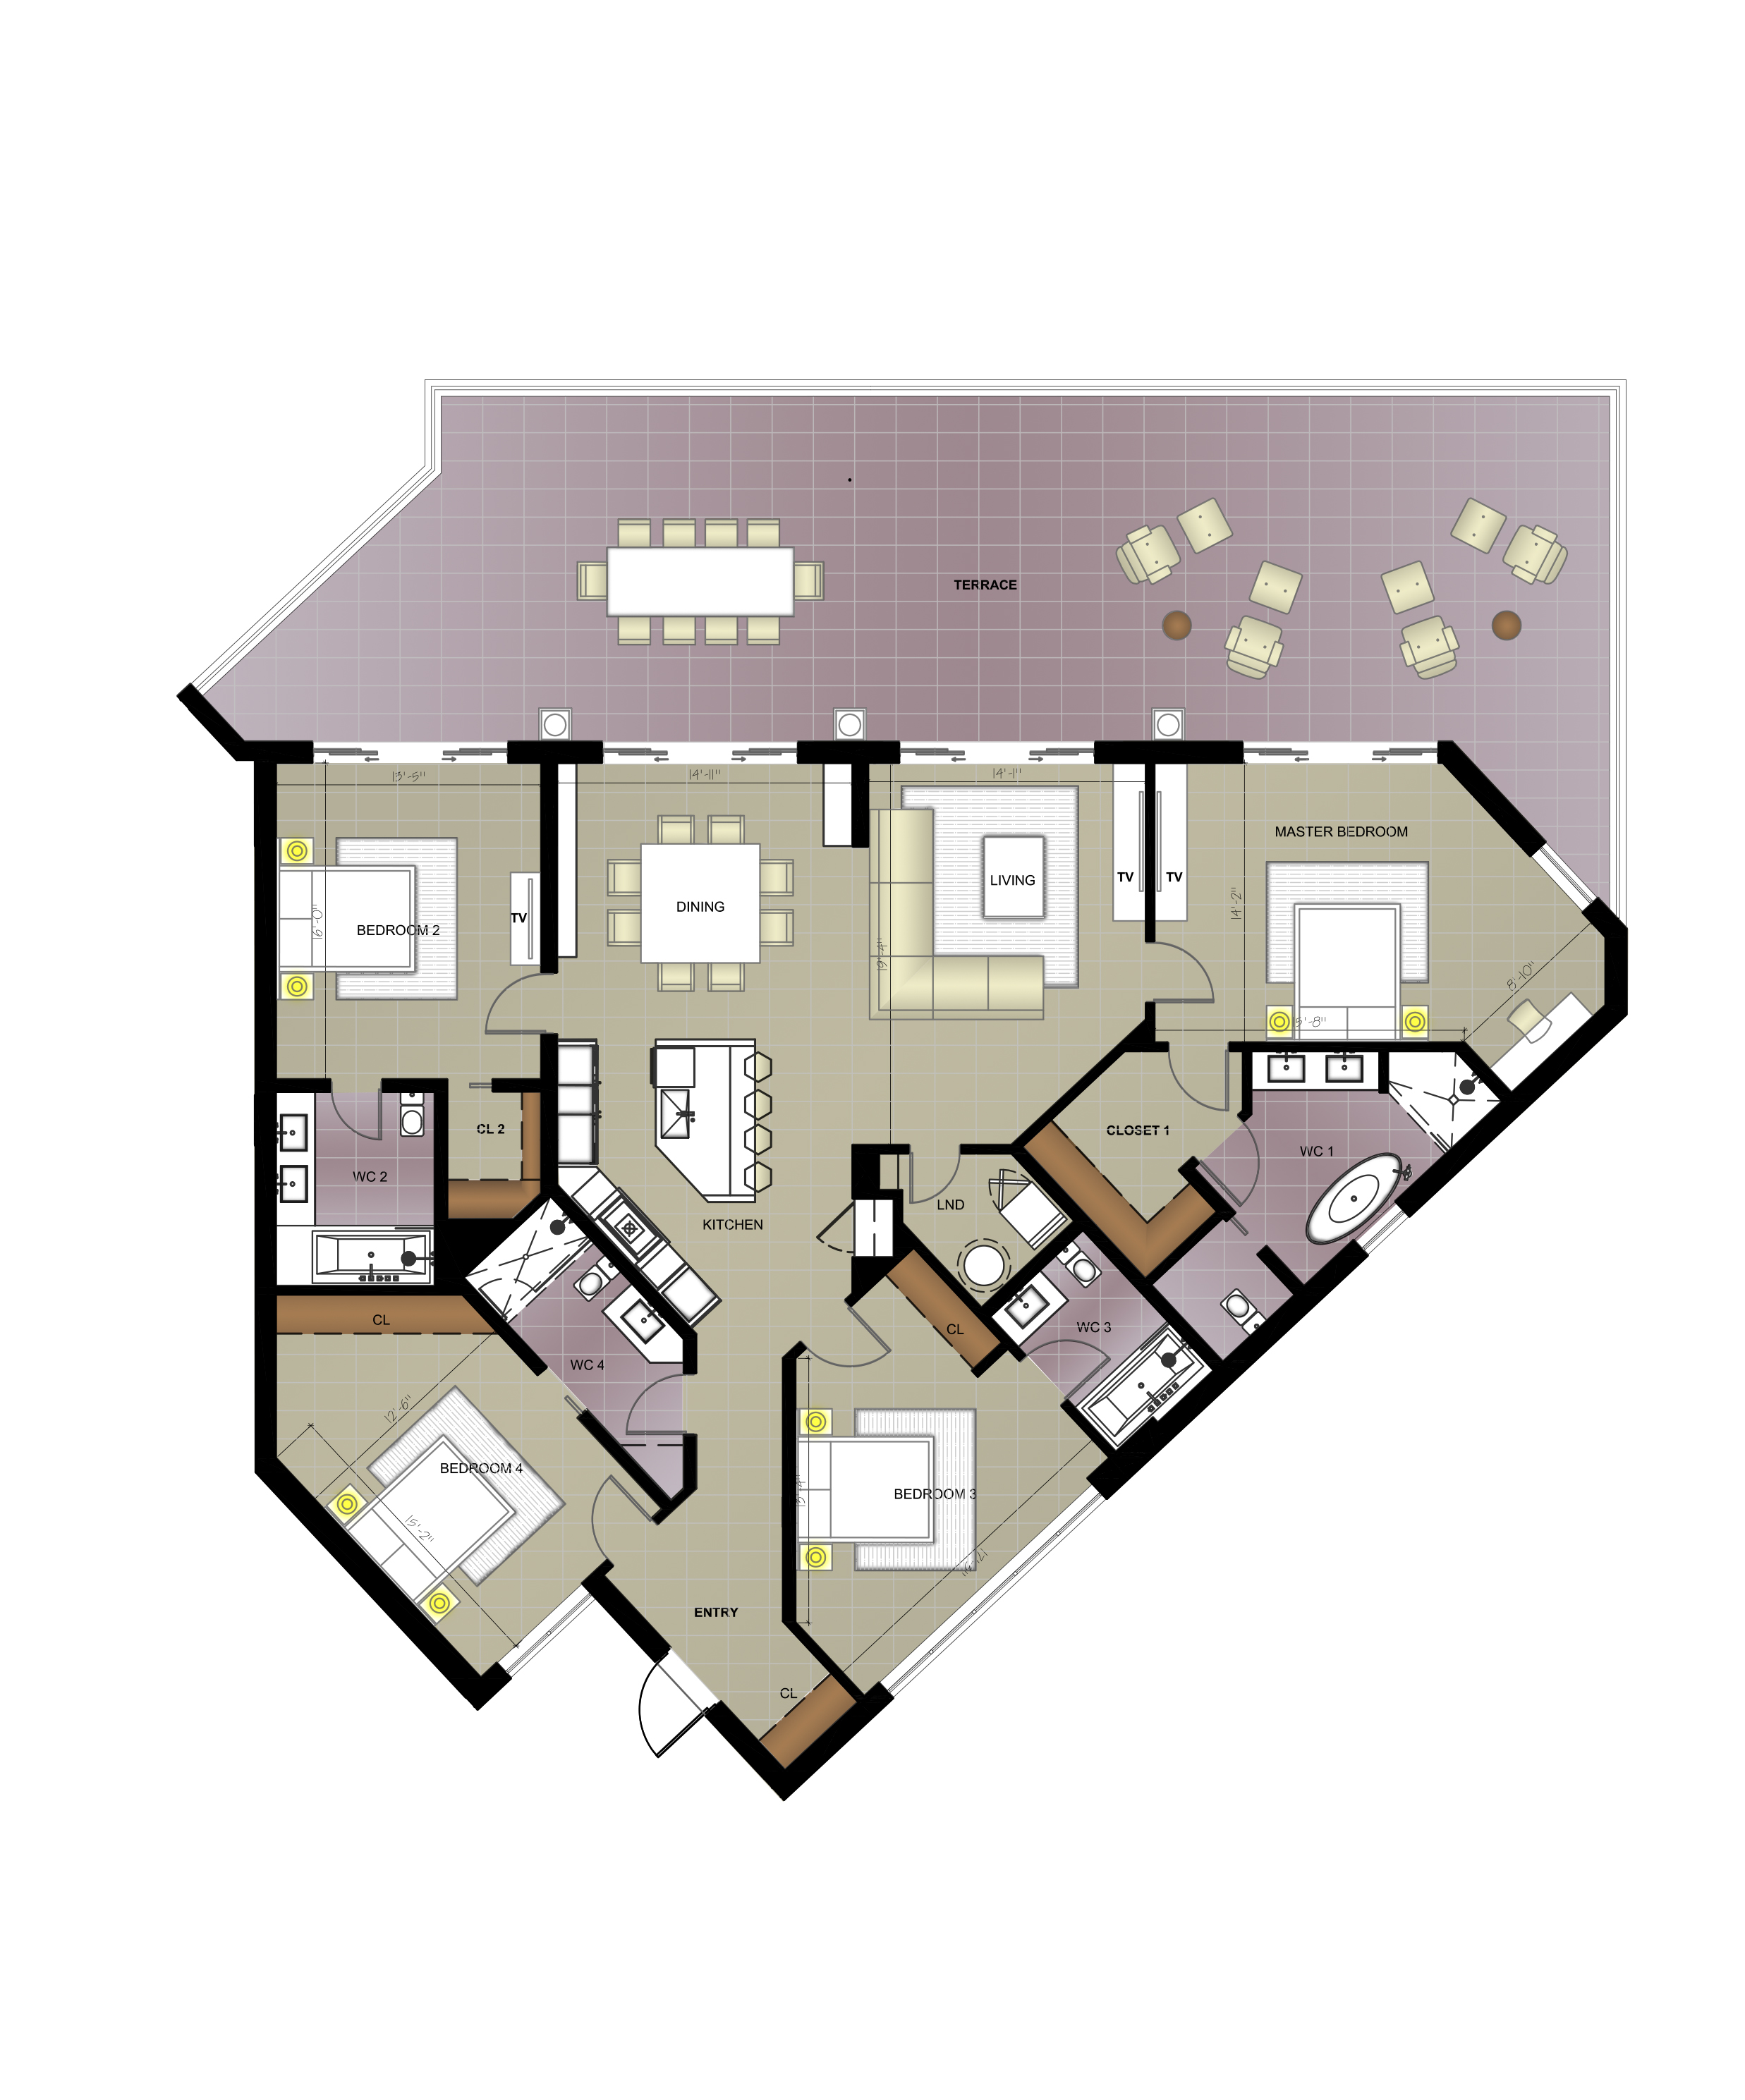 RESIDENCE #505/506 - 4 bed · 4 bath · 3800 SQ FTThis Residence includes a master suite with a walk in wardrobe and soaking tub, three ensuite bedrooms, entertainers kitchen with quartz counter-tops and stainless steel appliances, spacious lounge, guest bathroom, generous indoor/outdoor dining areas, and private balcony overlooking the ocean. The 3800 square foot unit also includes reserved underground parking and private cabana access.Listed at US$3,535,000